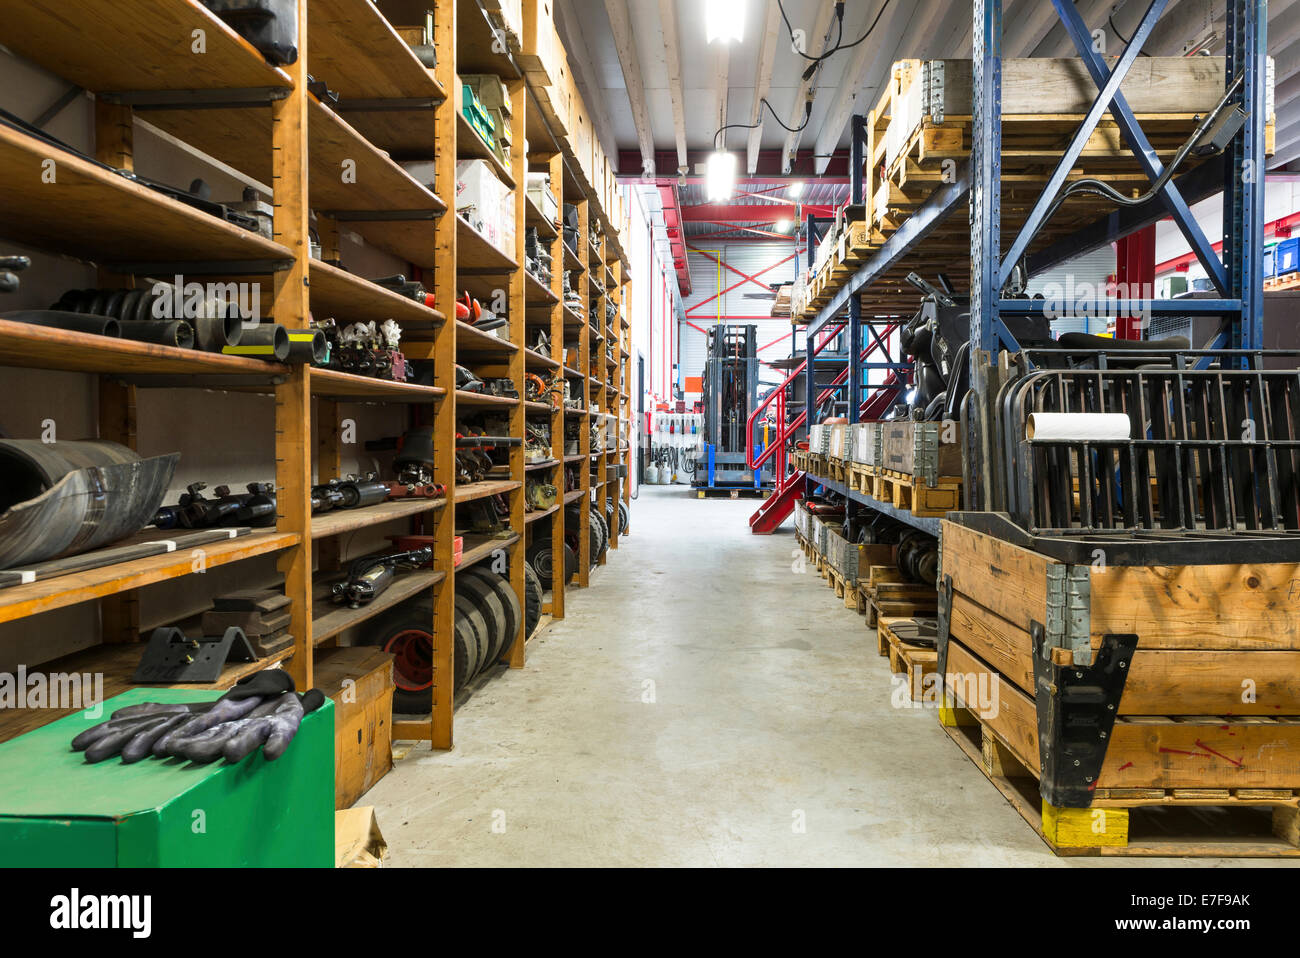 Shelves, tools and aisles in warehouse - Stock Image